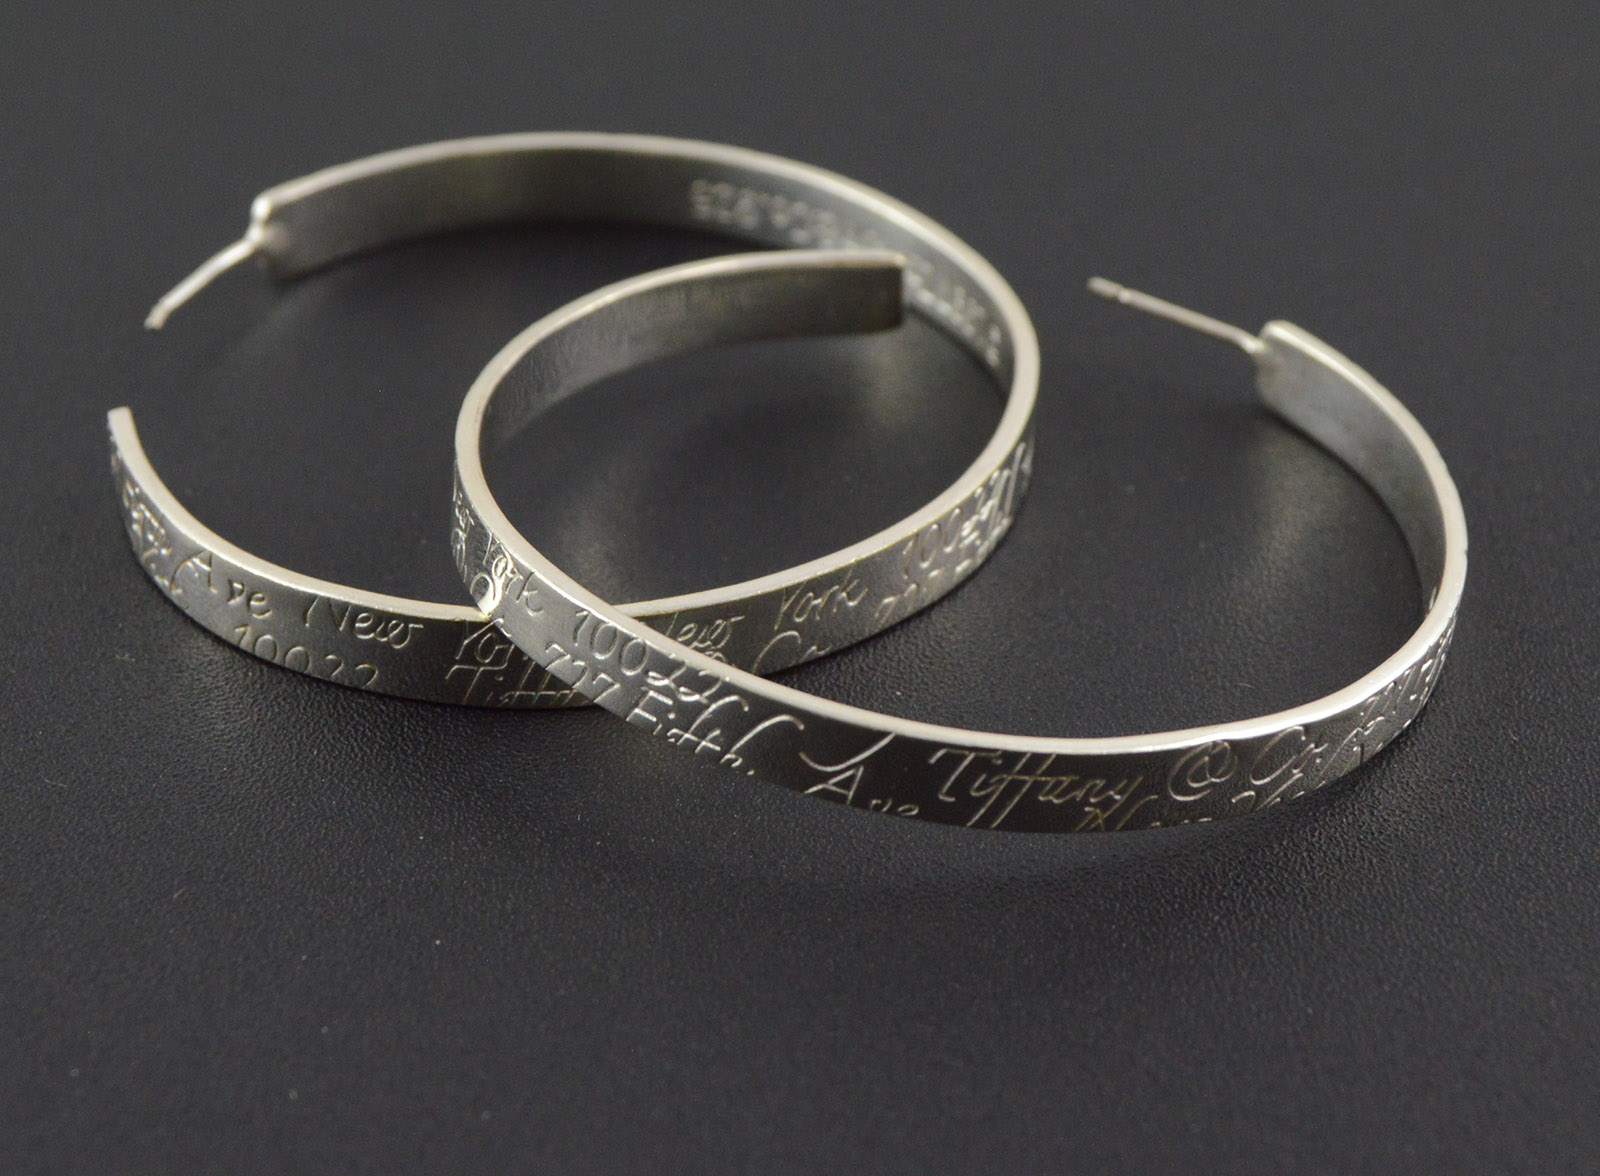 57a14a133 Image 1 of 2. 18.6g Solid Silver Tiffany & Co. Hoop Earrings Sterling  Premium Marked 925